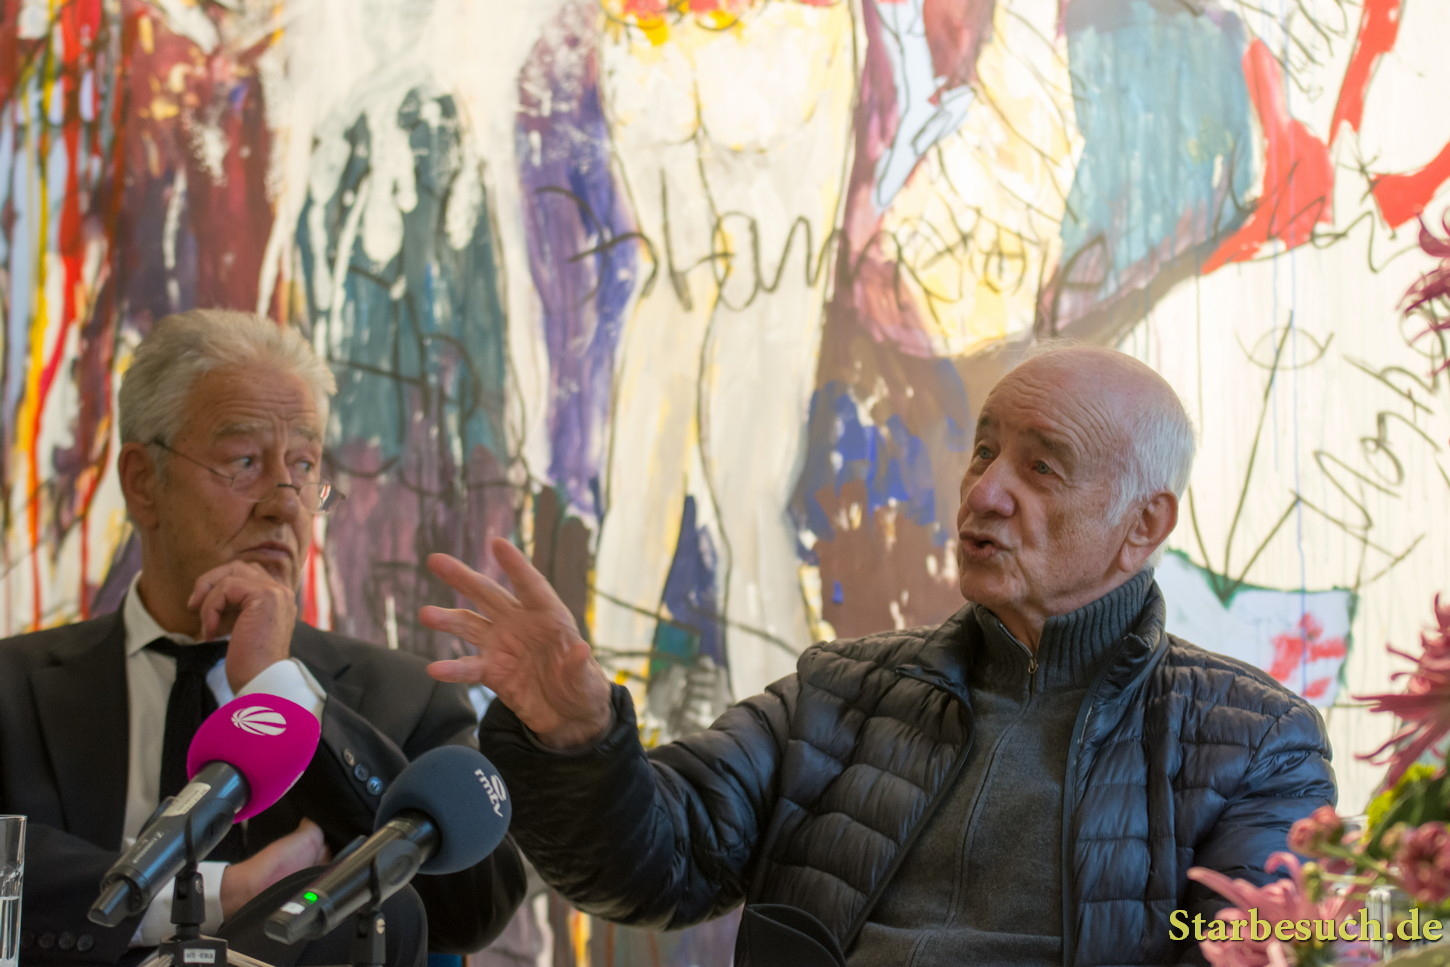 Bad Soden, Germany. 27th October, 2017. Armin Mueller-Stahl, German actor, painter and musician at the press conference for his art exhibition at Stadtgalerie Bad Soden. Exhibition Oct 28-Nov 26 2017